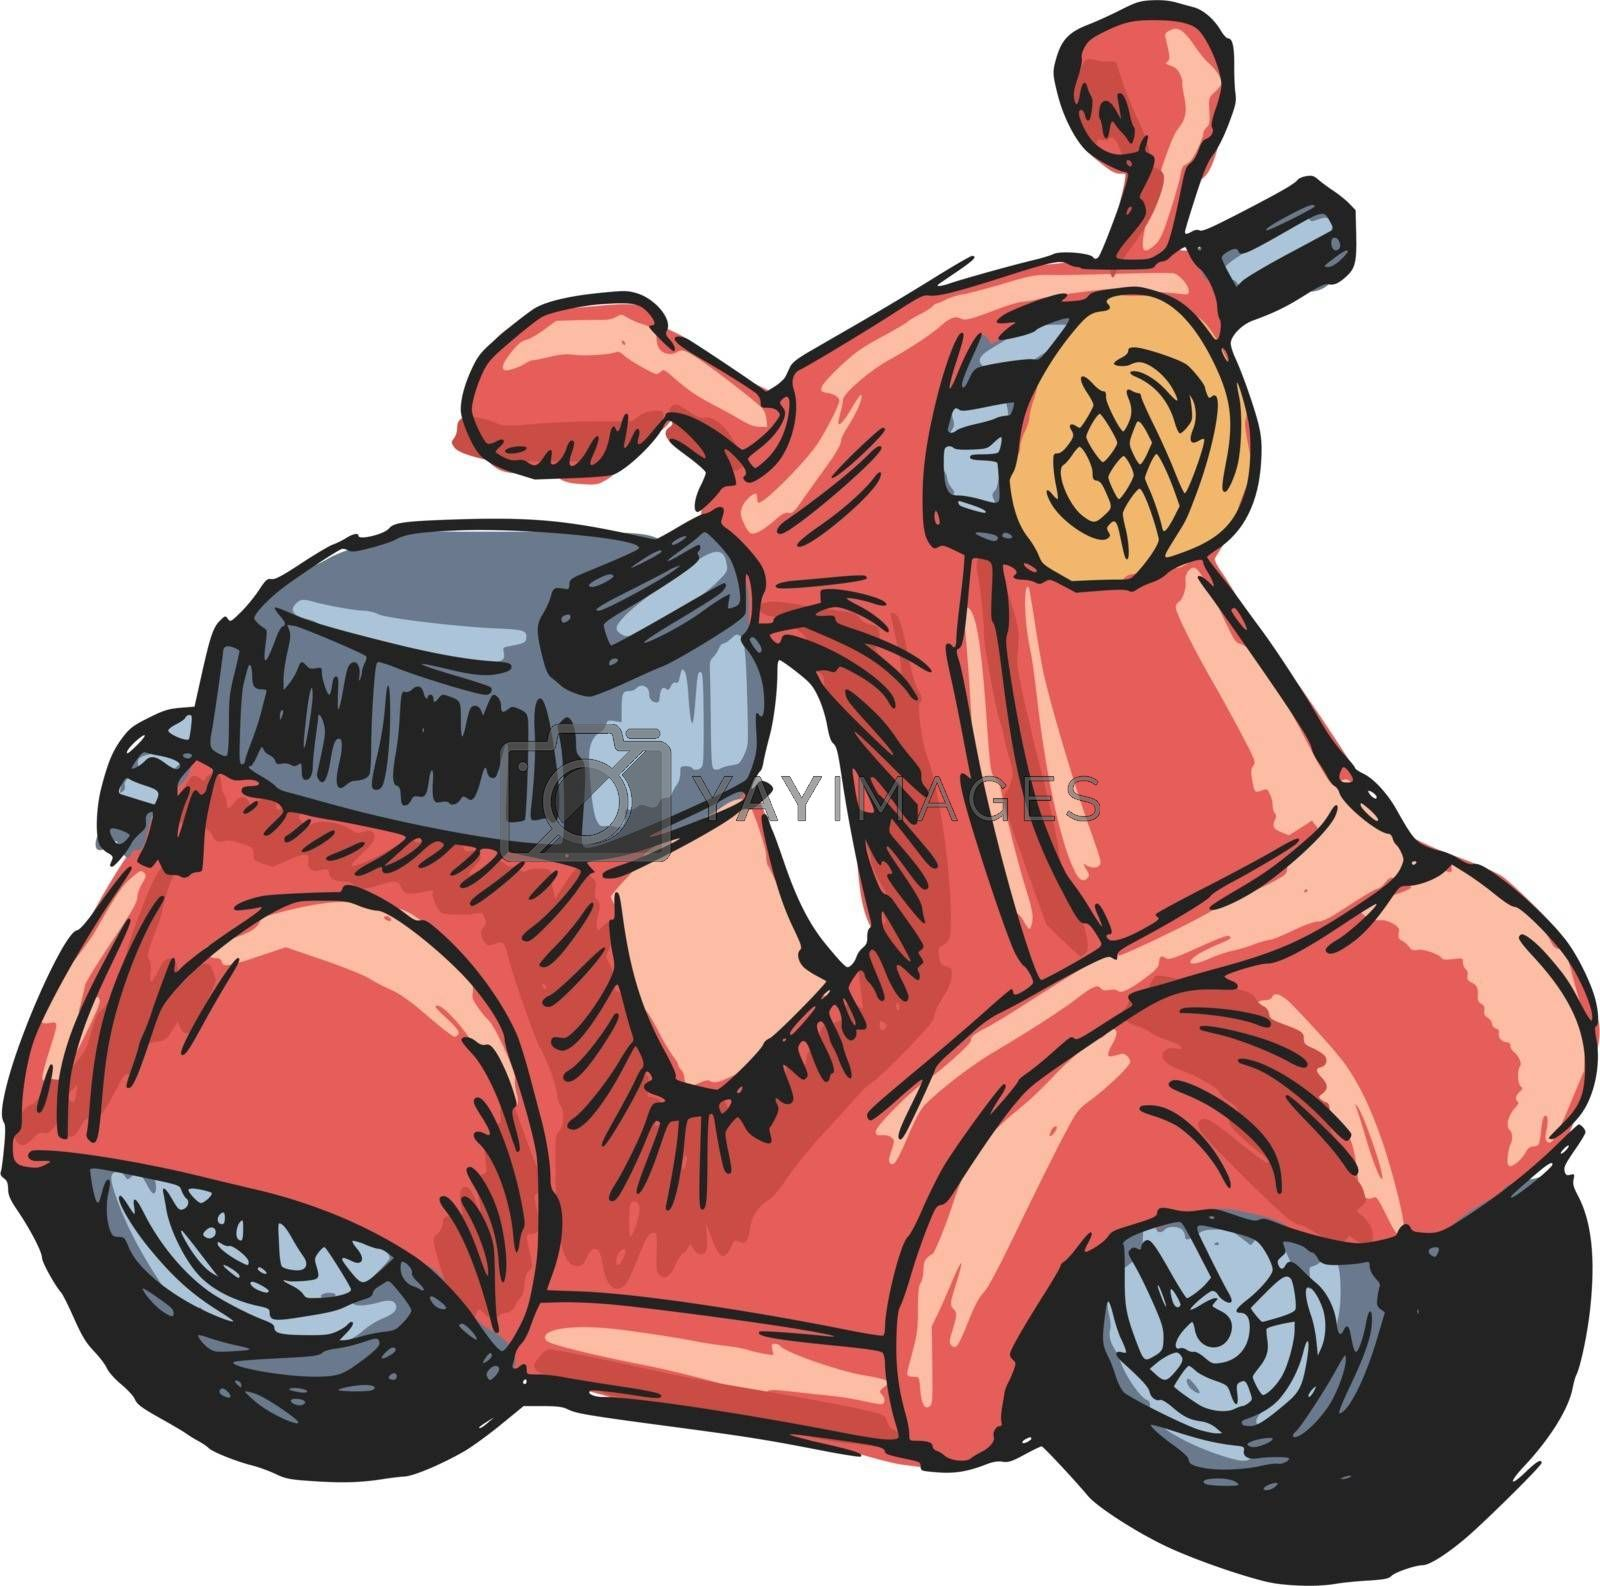 Royalty free image of toy scooter by Perysty